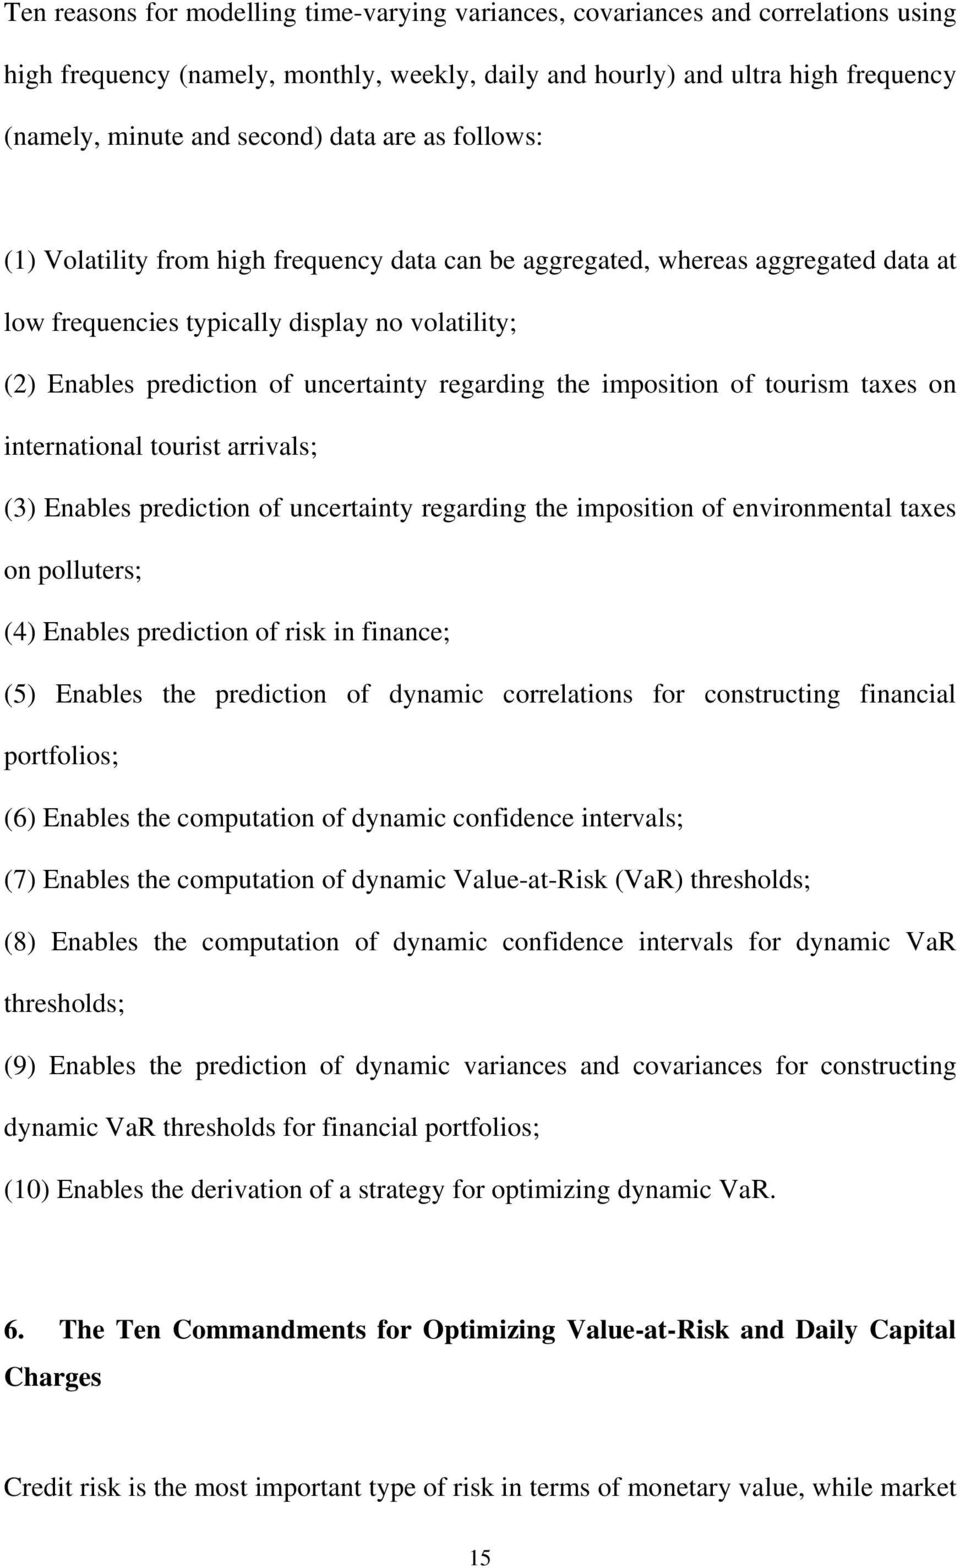 ourism axes on inernaional ouris arrivals; (3) Enables predicion of uncerainy regarding he imposiion of environmenal axes on polluers; (4) Enables predicion of risk in finance; (5) Enables he